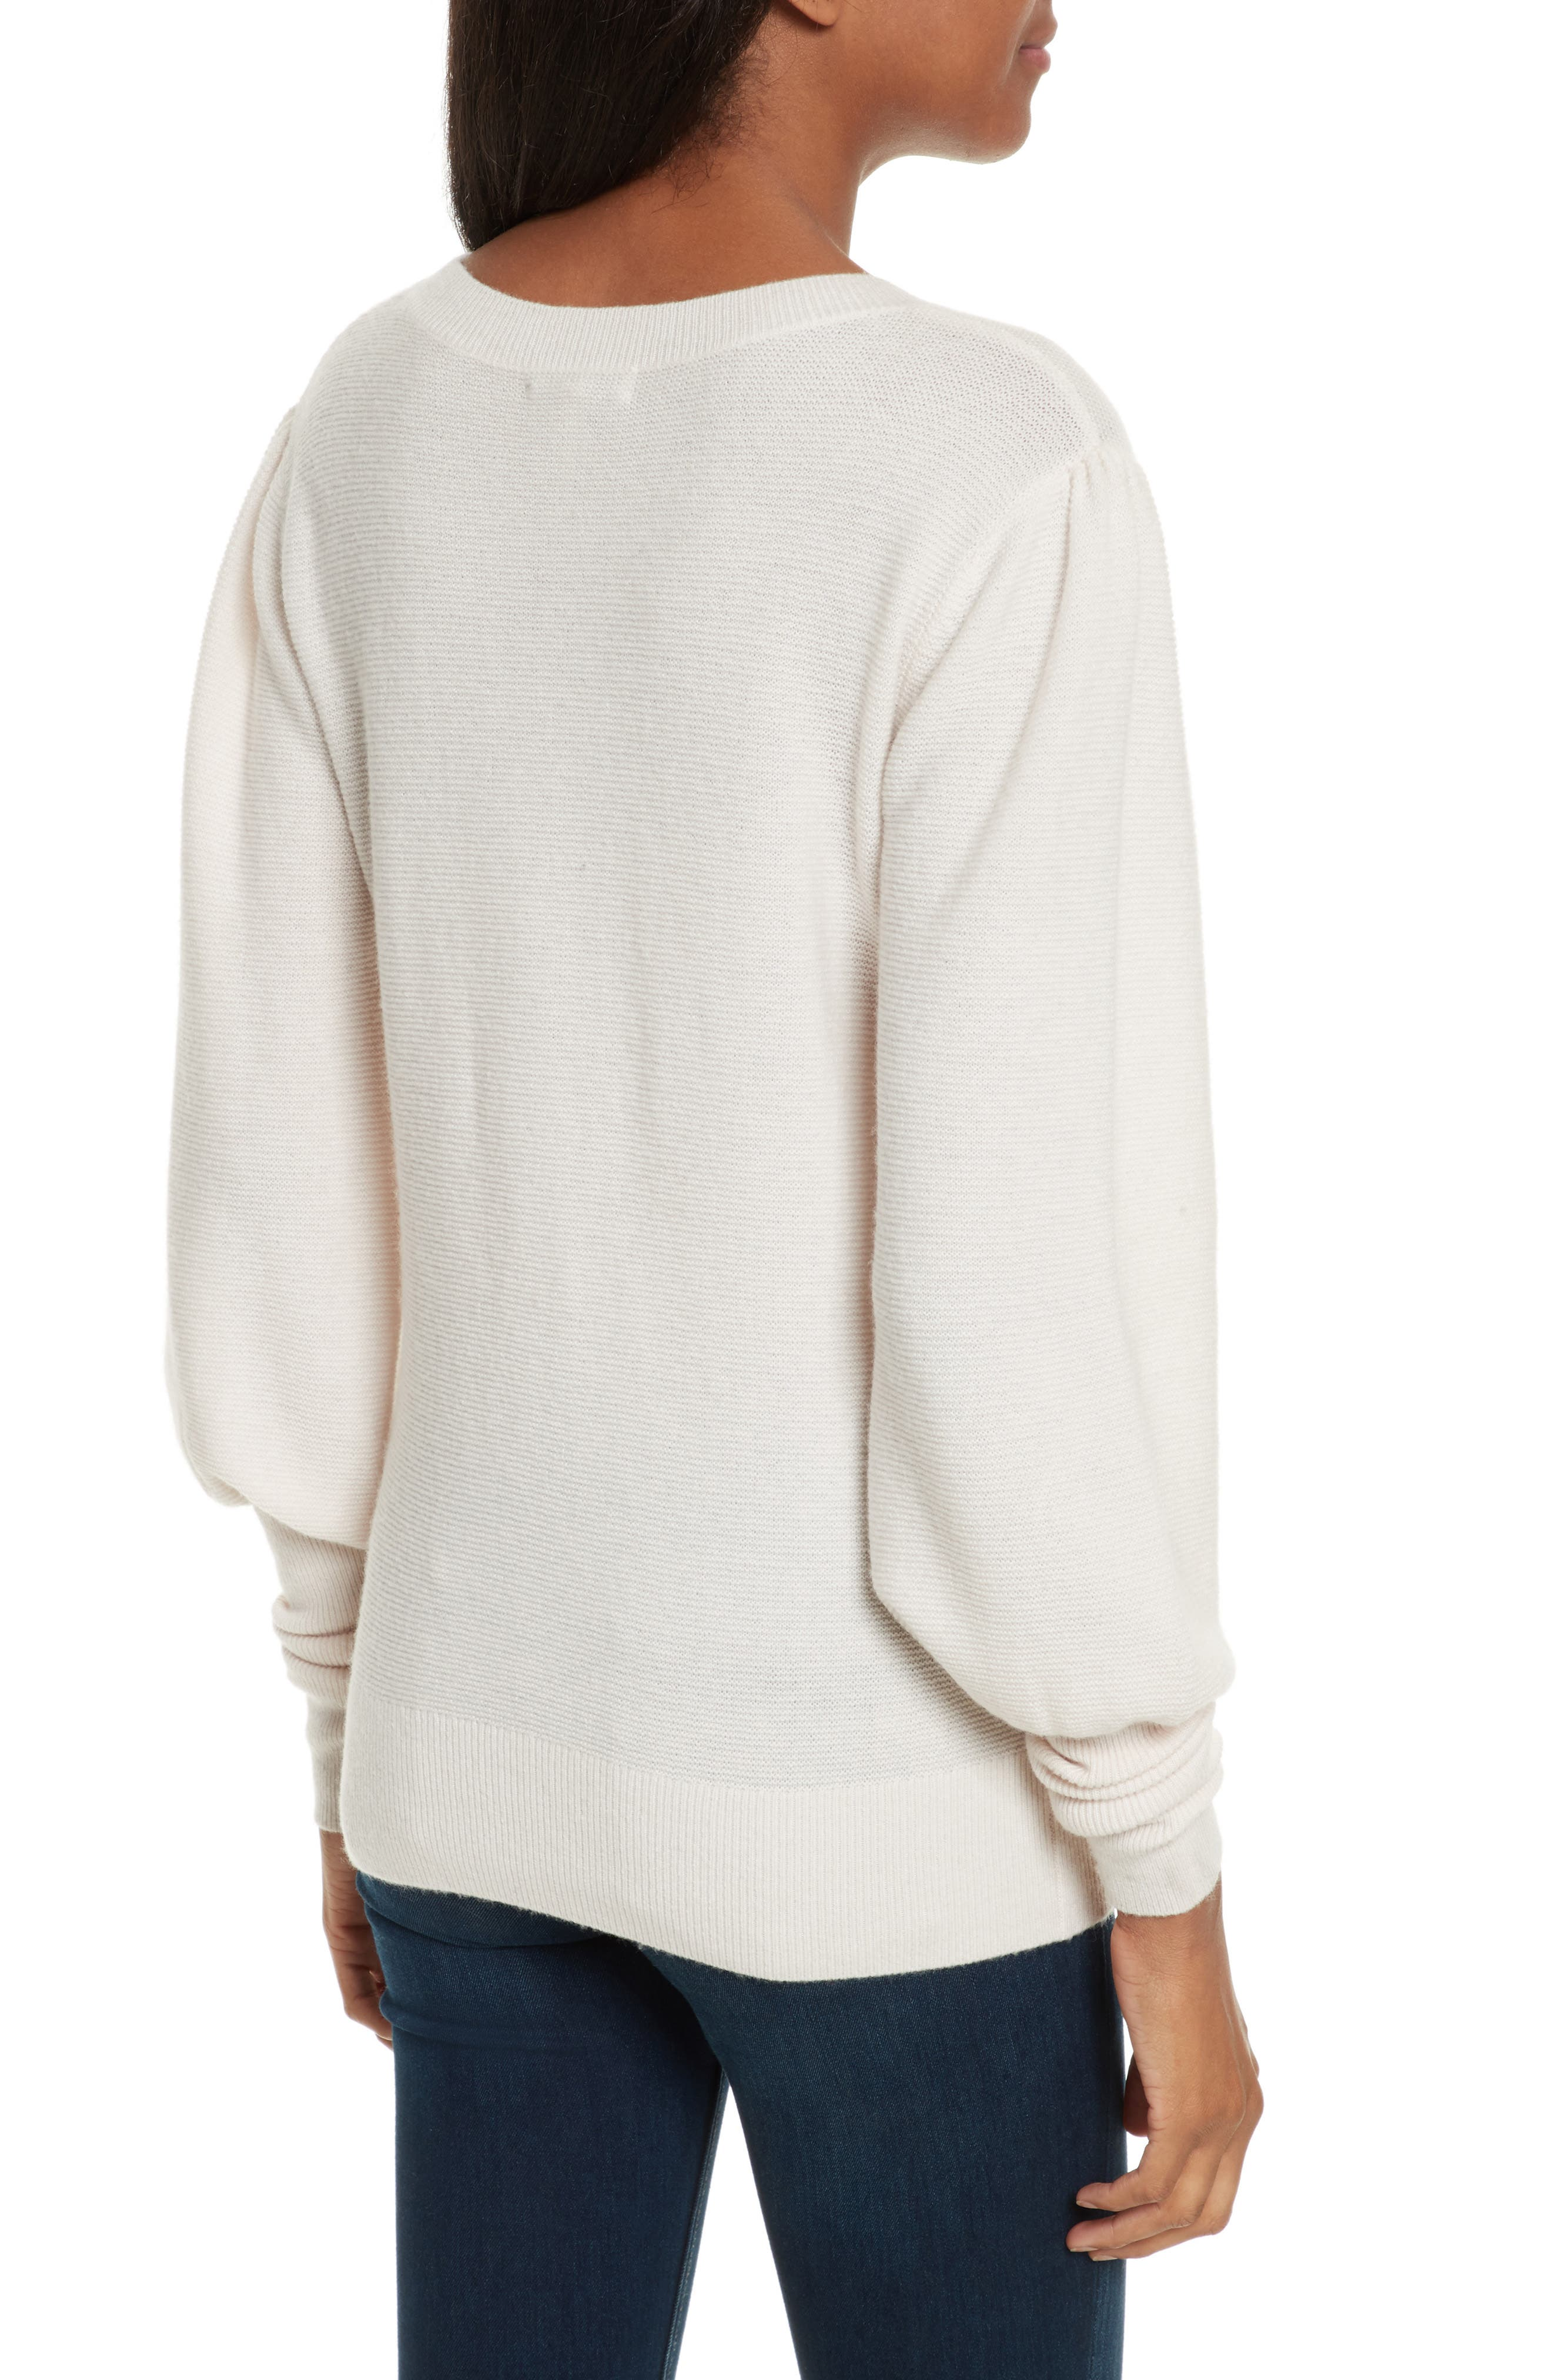 Noely Wool and Cashmere Sweater,                             Alternate thumbnail 4, color,